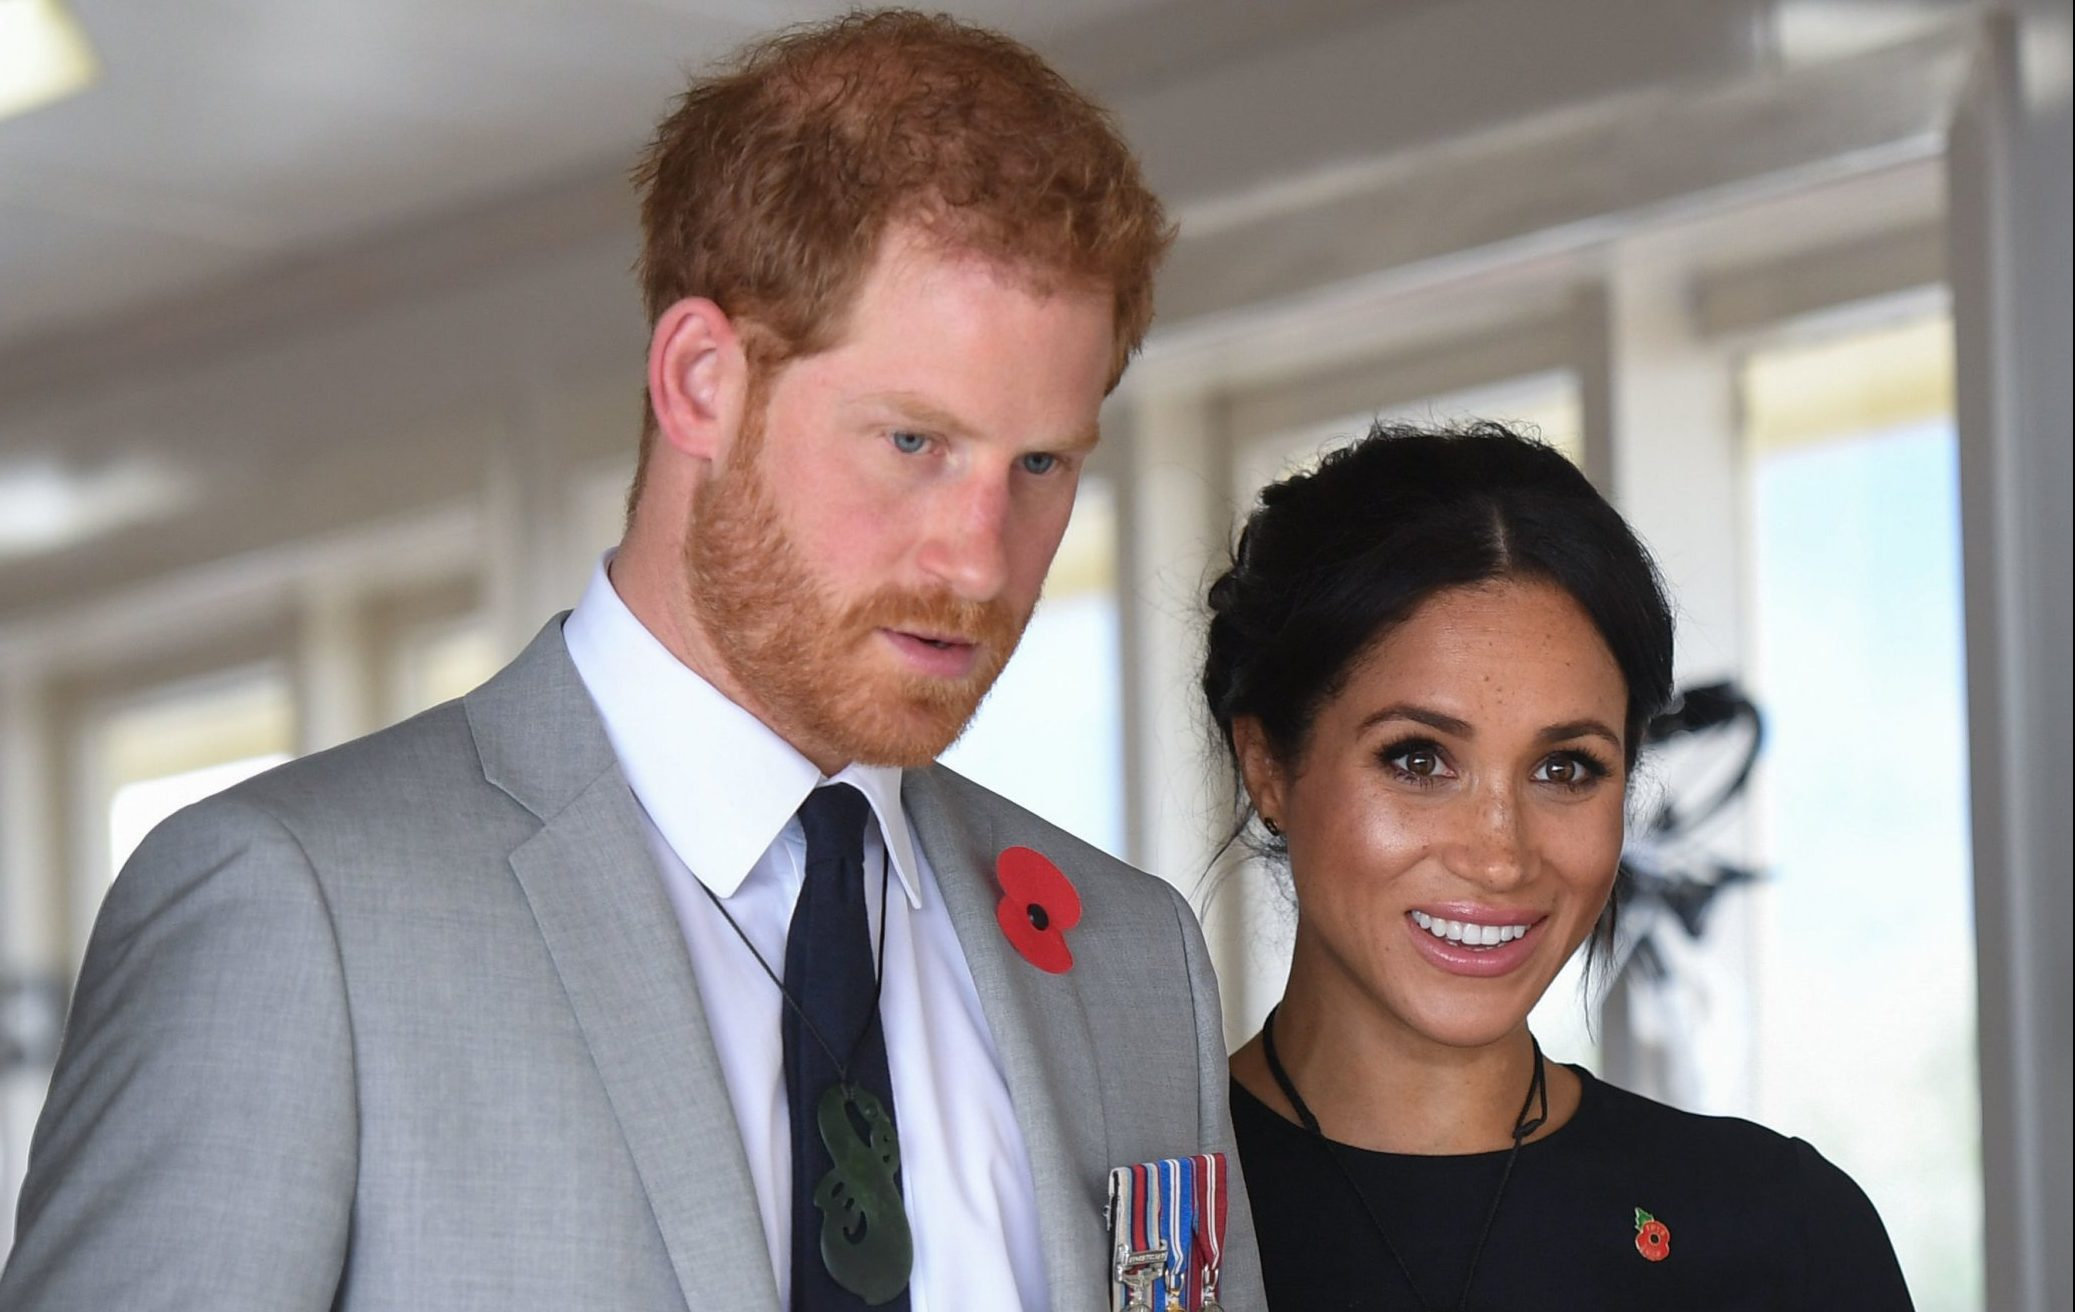 The Duchess of Sussex tour kitchens during a visit to Te Papaiouru, Ohinemutu, in Rotorua, before a lunch in honour of Harry and Meghan, on day four of the royal couple's tour of New Zealand. PRESS ASSOCIATION Photo. Picture date: Wednesday October 31, 2018. See PA story ROYAL Tour. Photo credit should read: Paul Edwards/The Sun/PA Wire